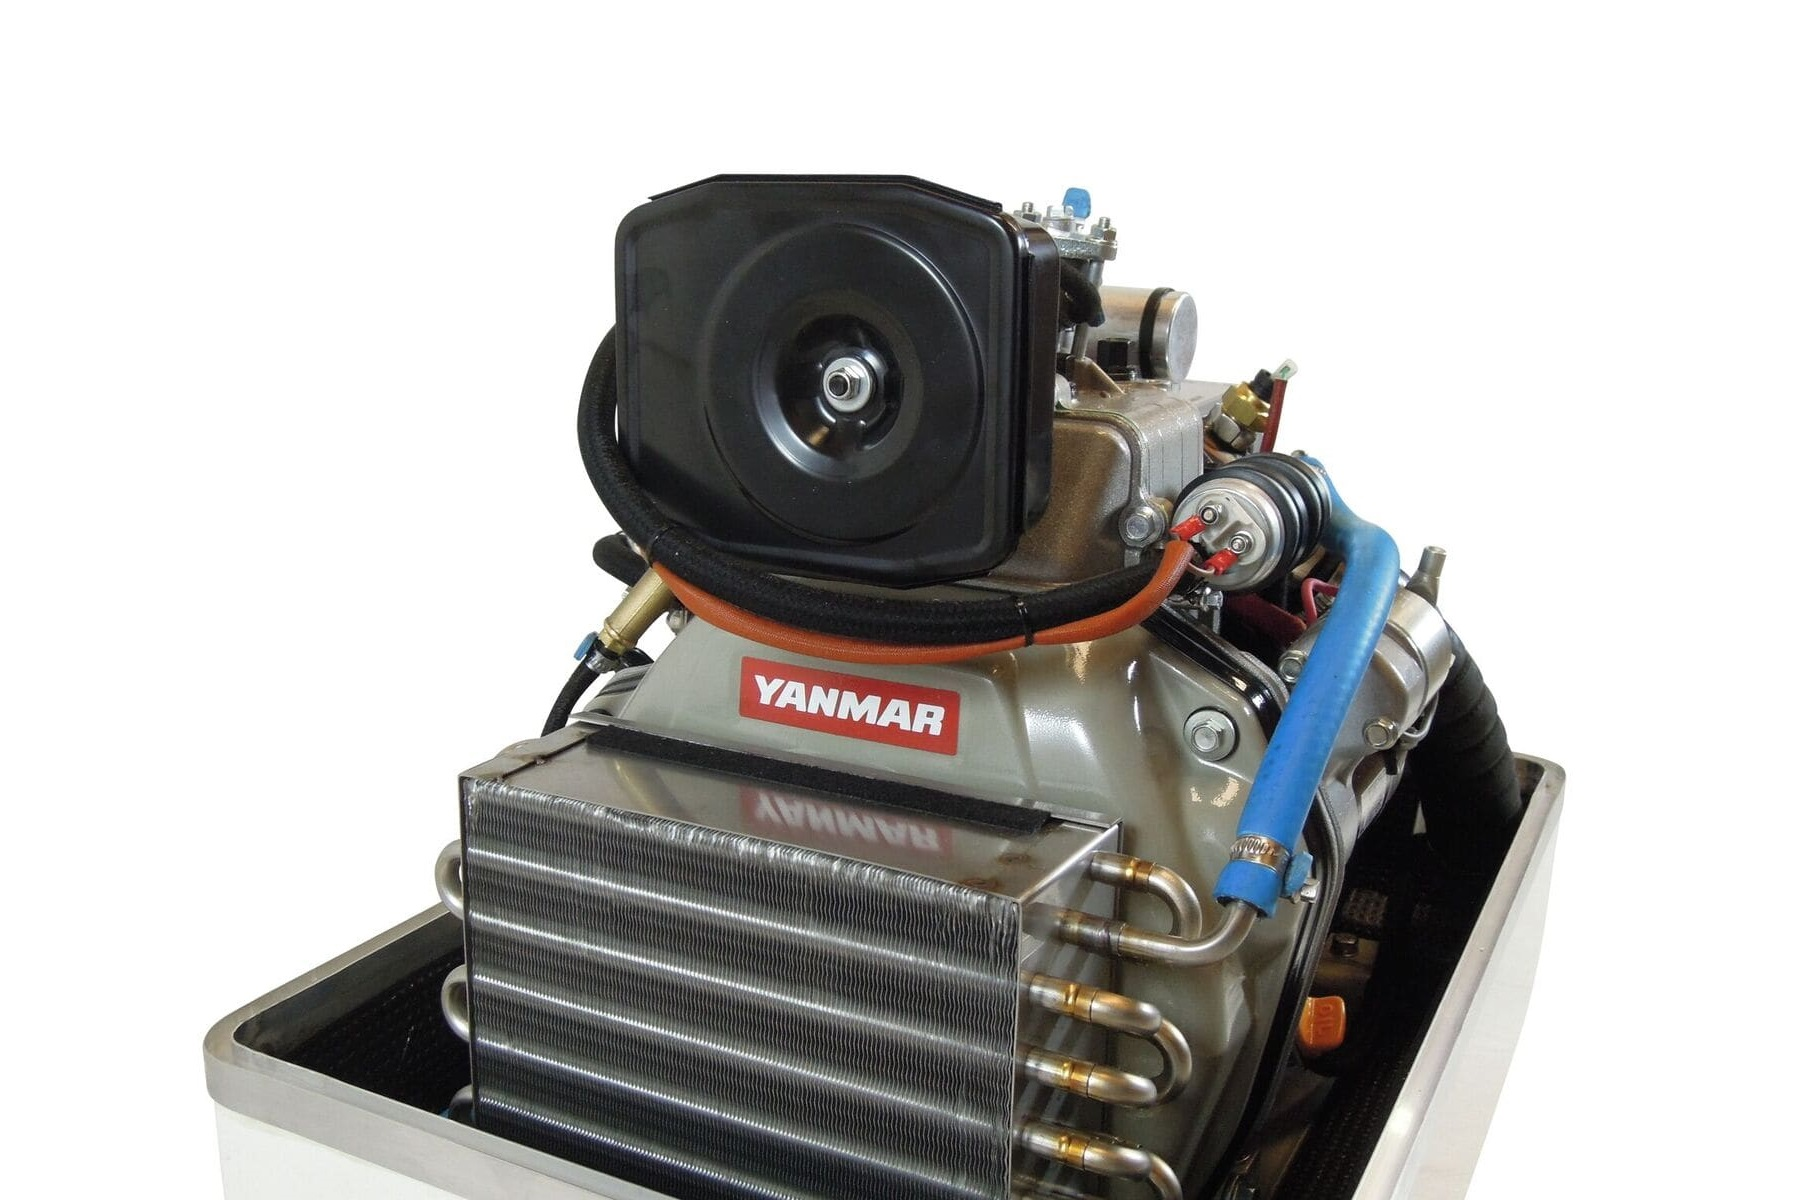 - Powered By YanmarWe are proud to have Yanmar engines fitted to the new SY Series of Paguro generators. Recognised worldwide, their reputation for power and reliability complements that of the VTE system. Together, they assure you of a package which is powerful and reliable but also one that is user friendly and easy to maintain. The service interval for the engine is an amazing 250 hours and the service tasks are simple. With no oil filter and the water pump now having a carbon ceramic seal, the only thing that is routinely required is an oil change!